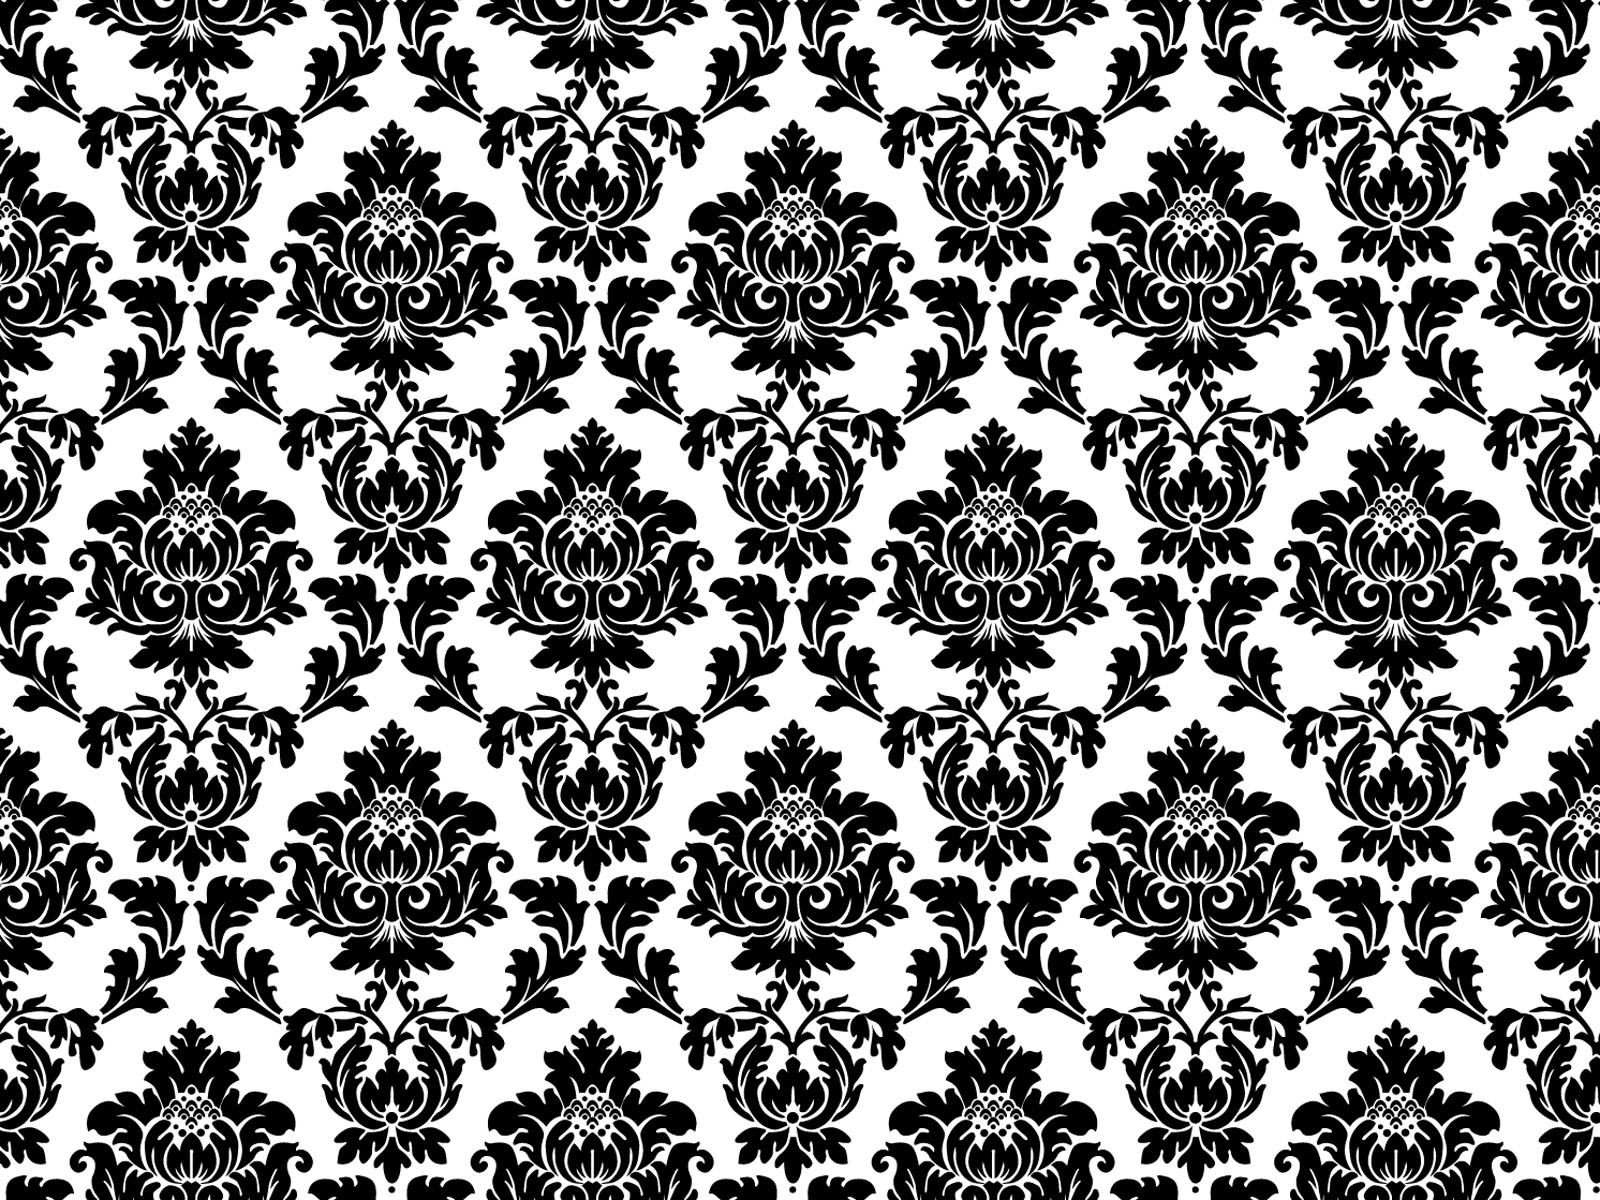 paper dark coloured and patterns  google search  scrapbooking  - pattern wallpaper